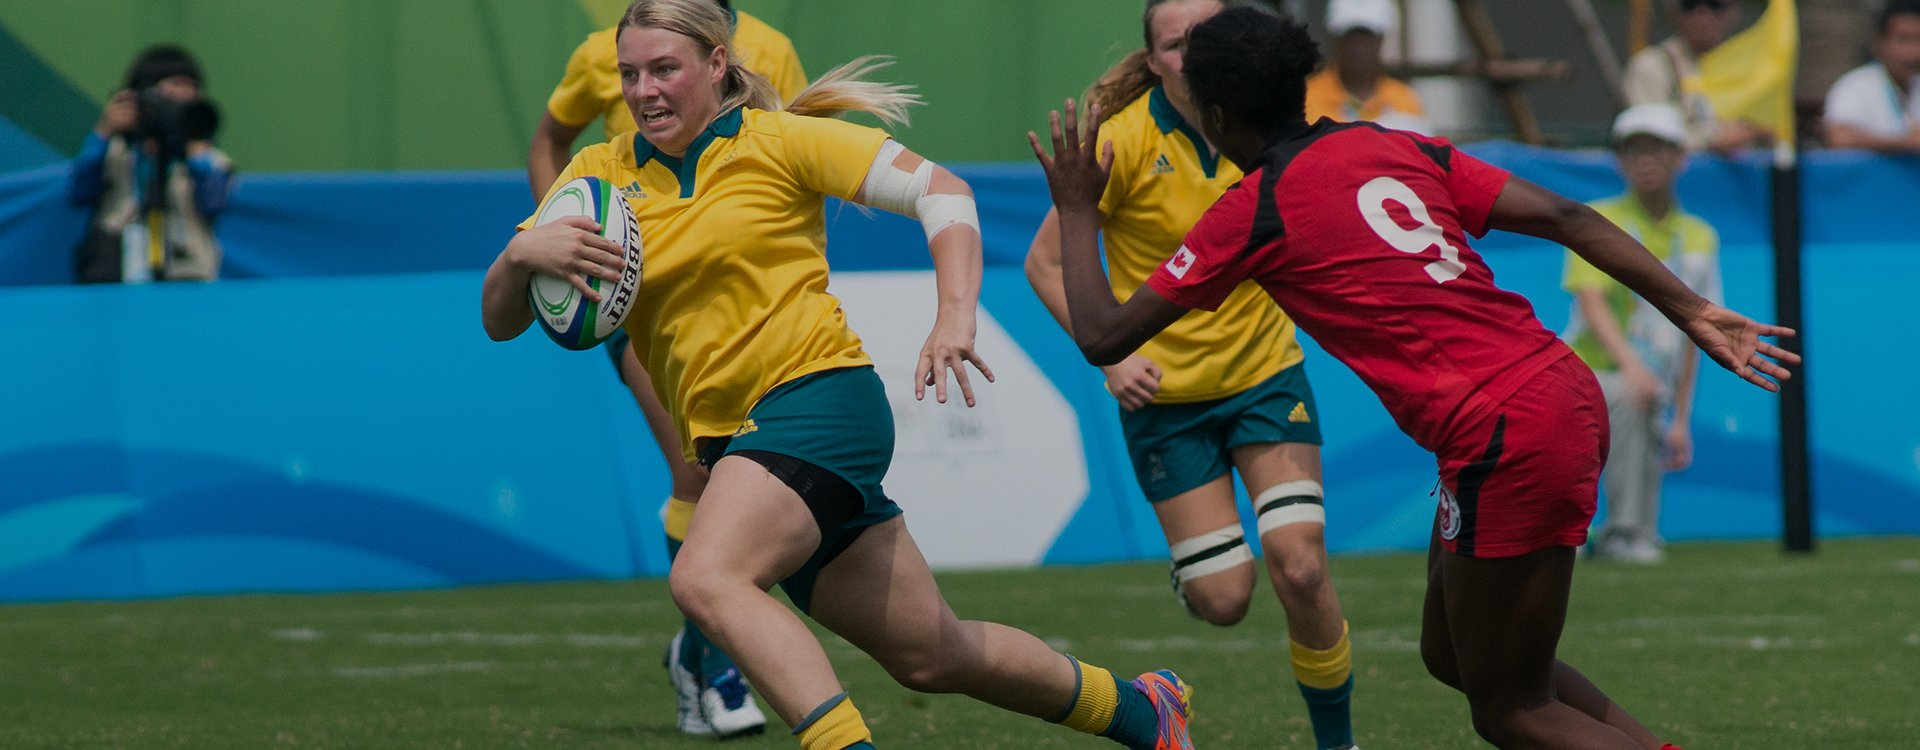 New Olympic Sports: Rugby Sevens